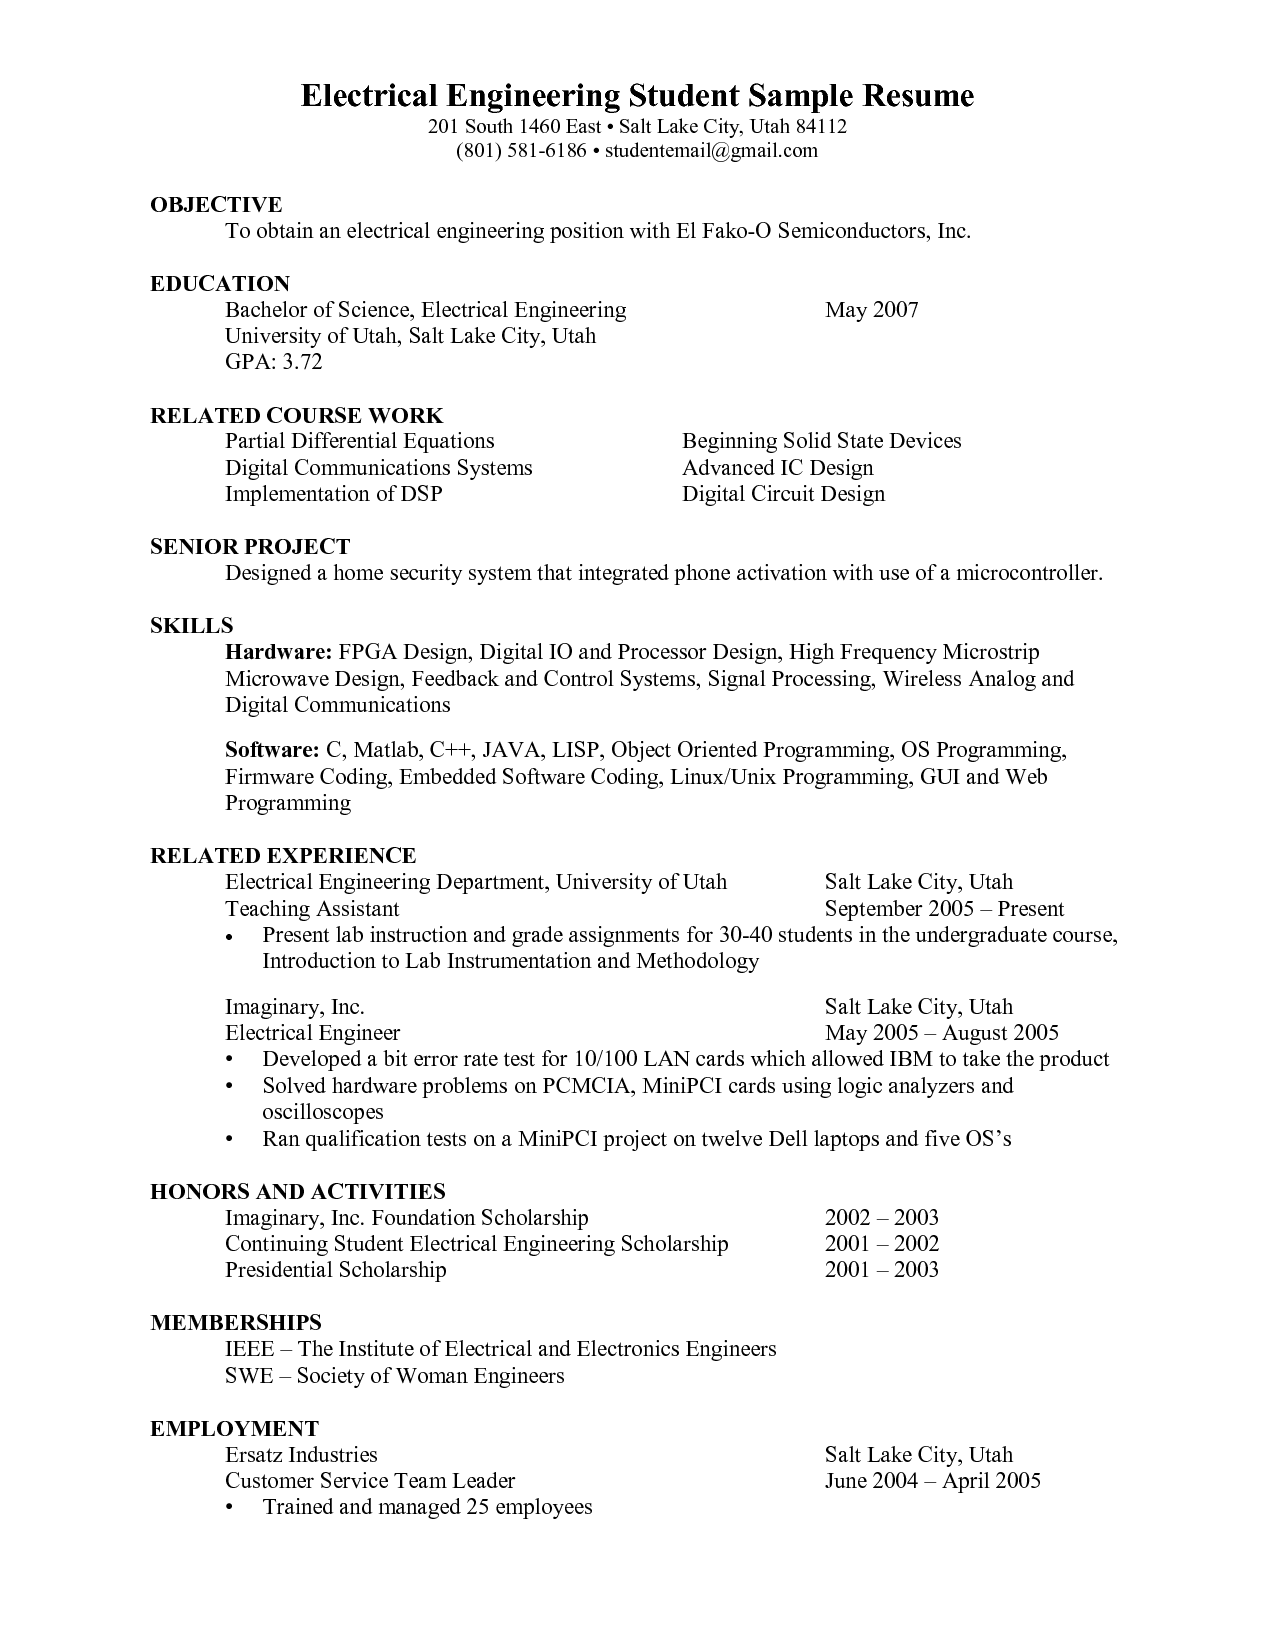 Perfect Resume Example Resume Examples For Electronics Engineering Students  Httpwww